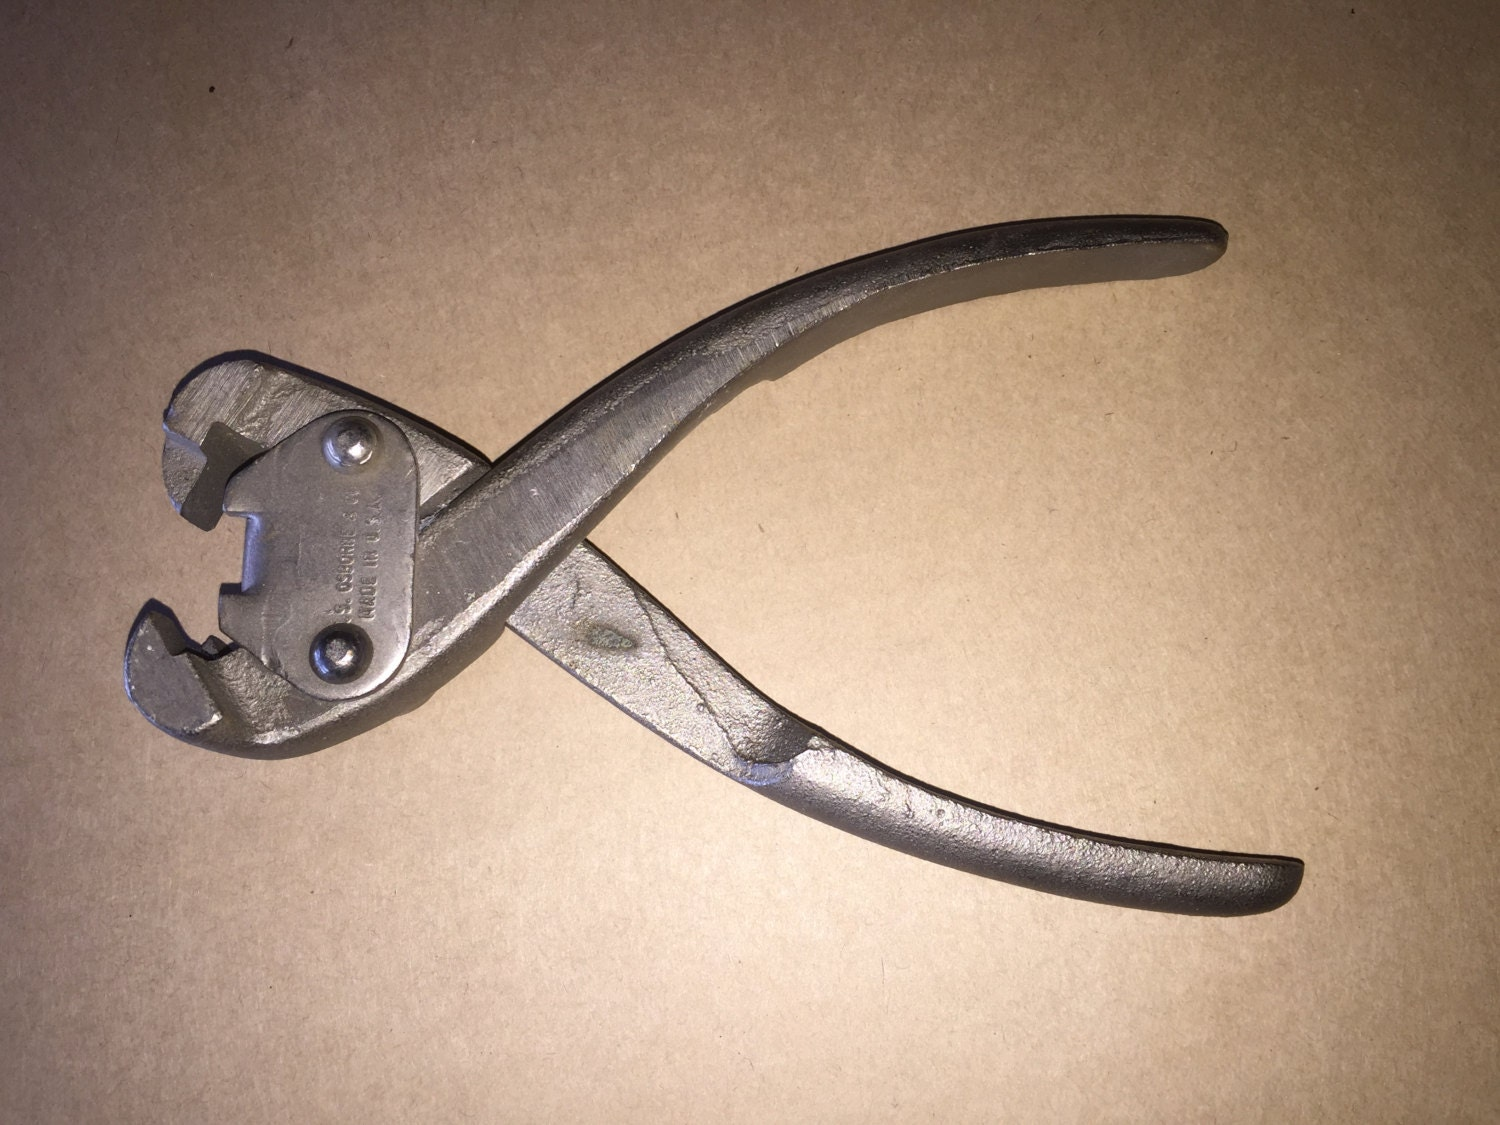 Spring Clip Pliers Related Keywords Suggestions Spring Clip